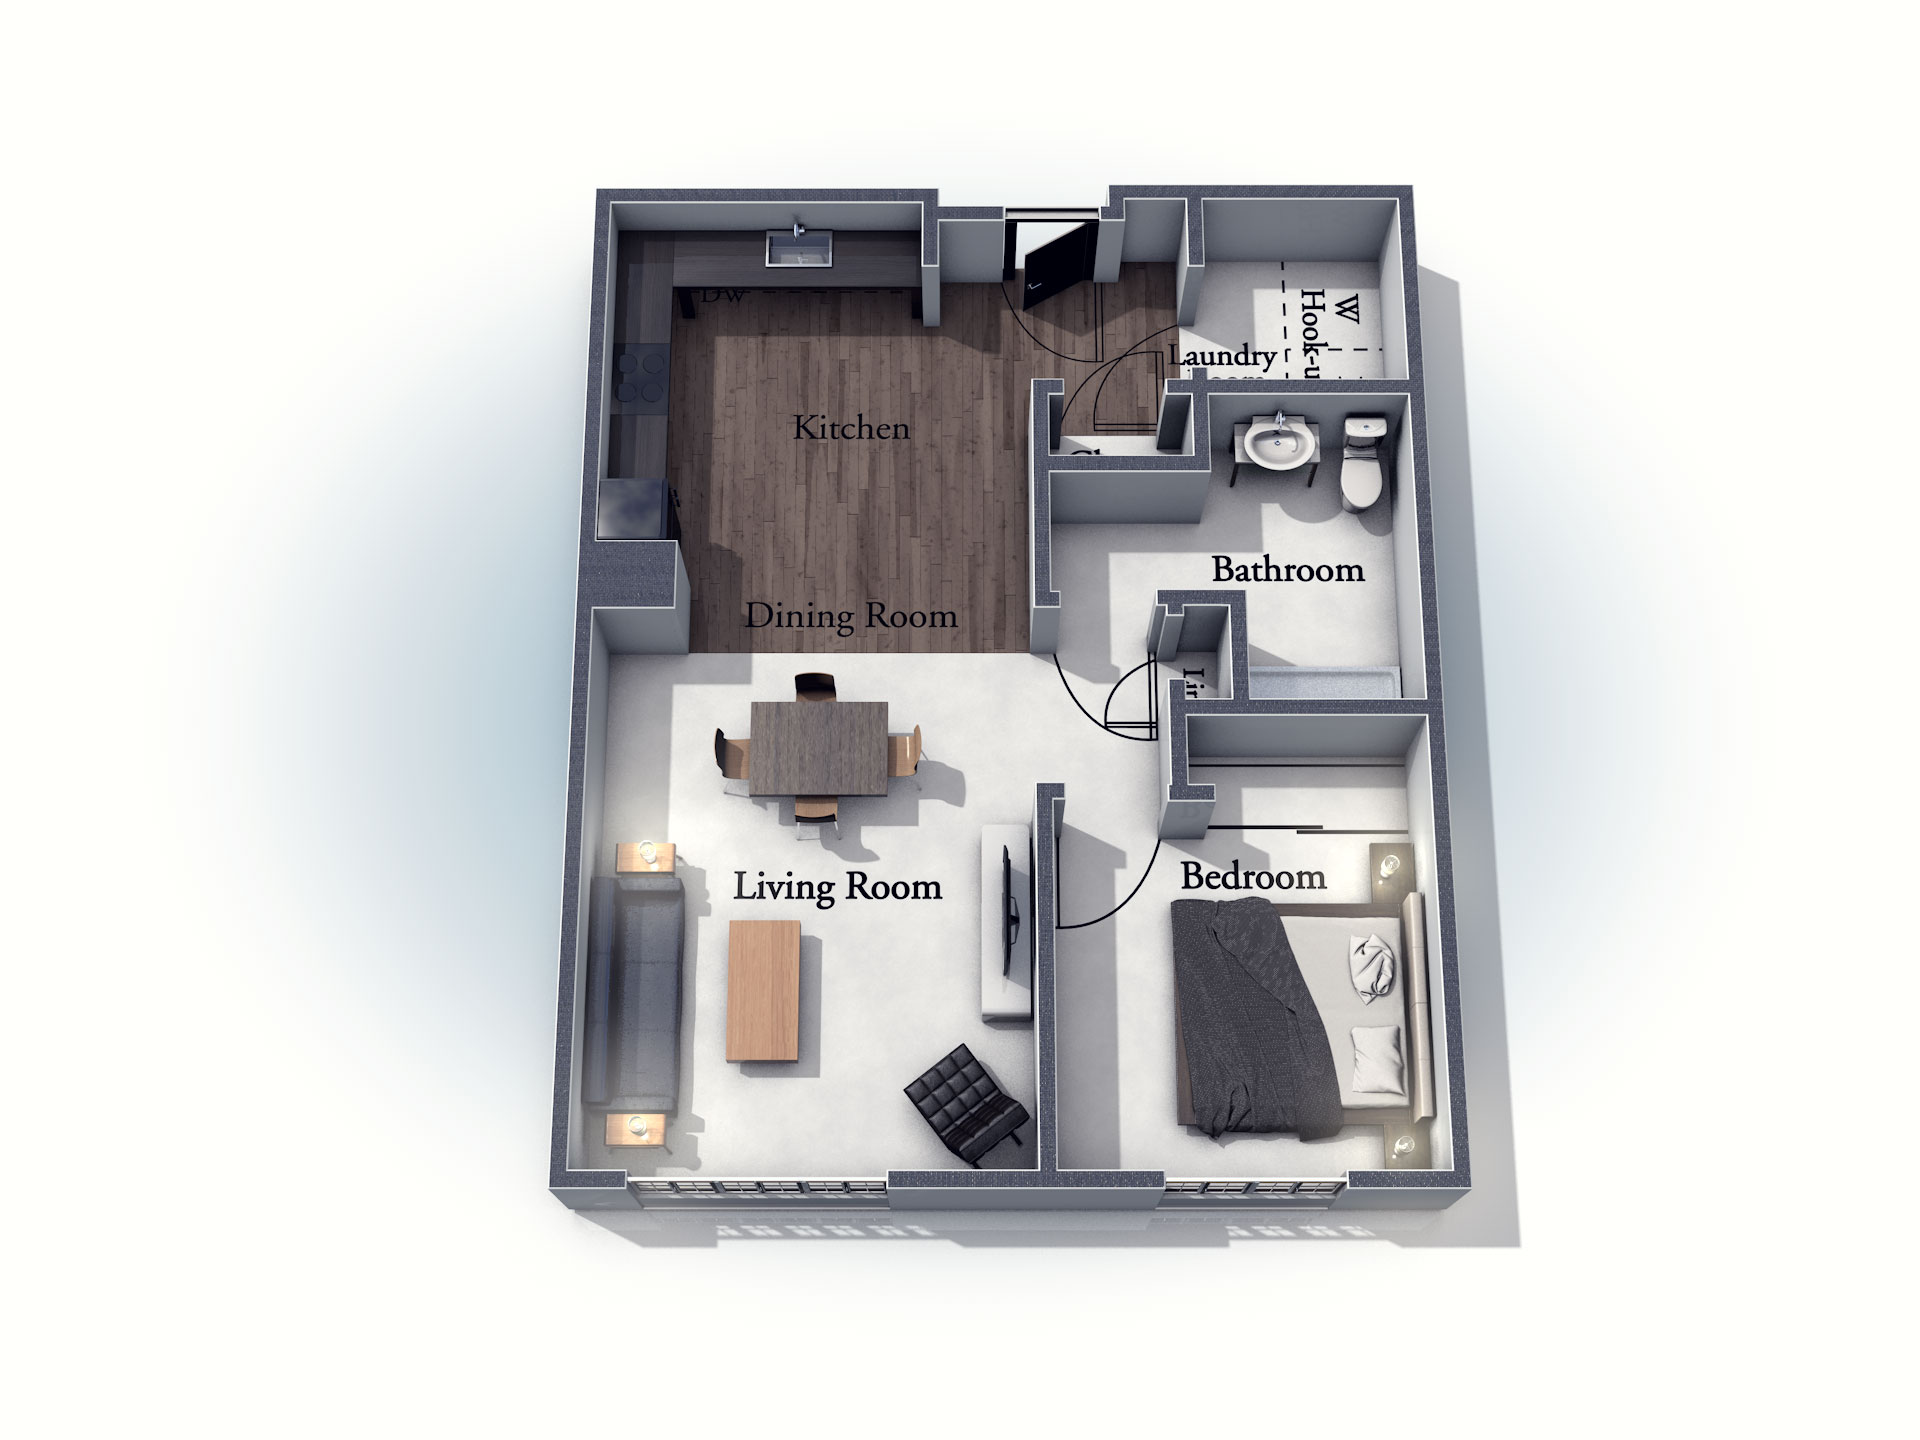 This 3D rendering of the Berkshire living space shows an example of the floor plan layout. Please contact the Summit Pointe Senior Living Community for more information.